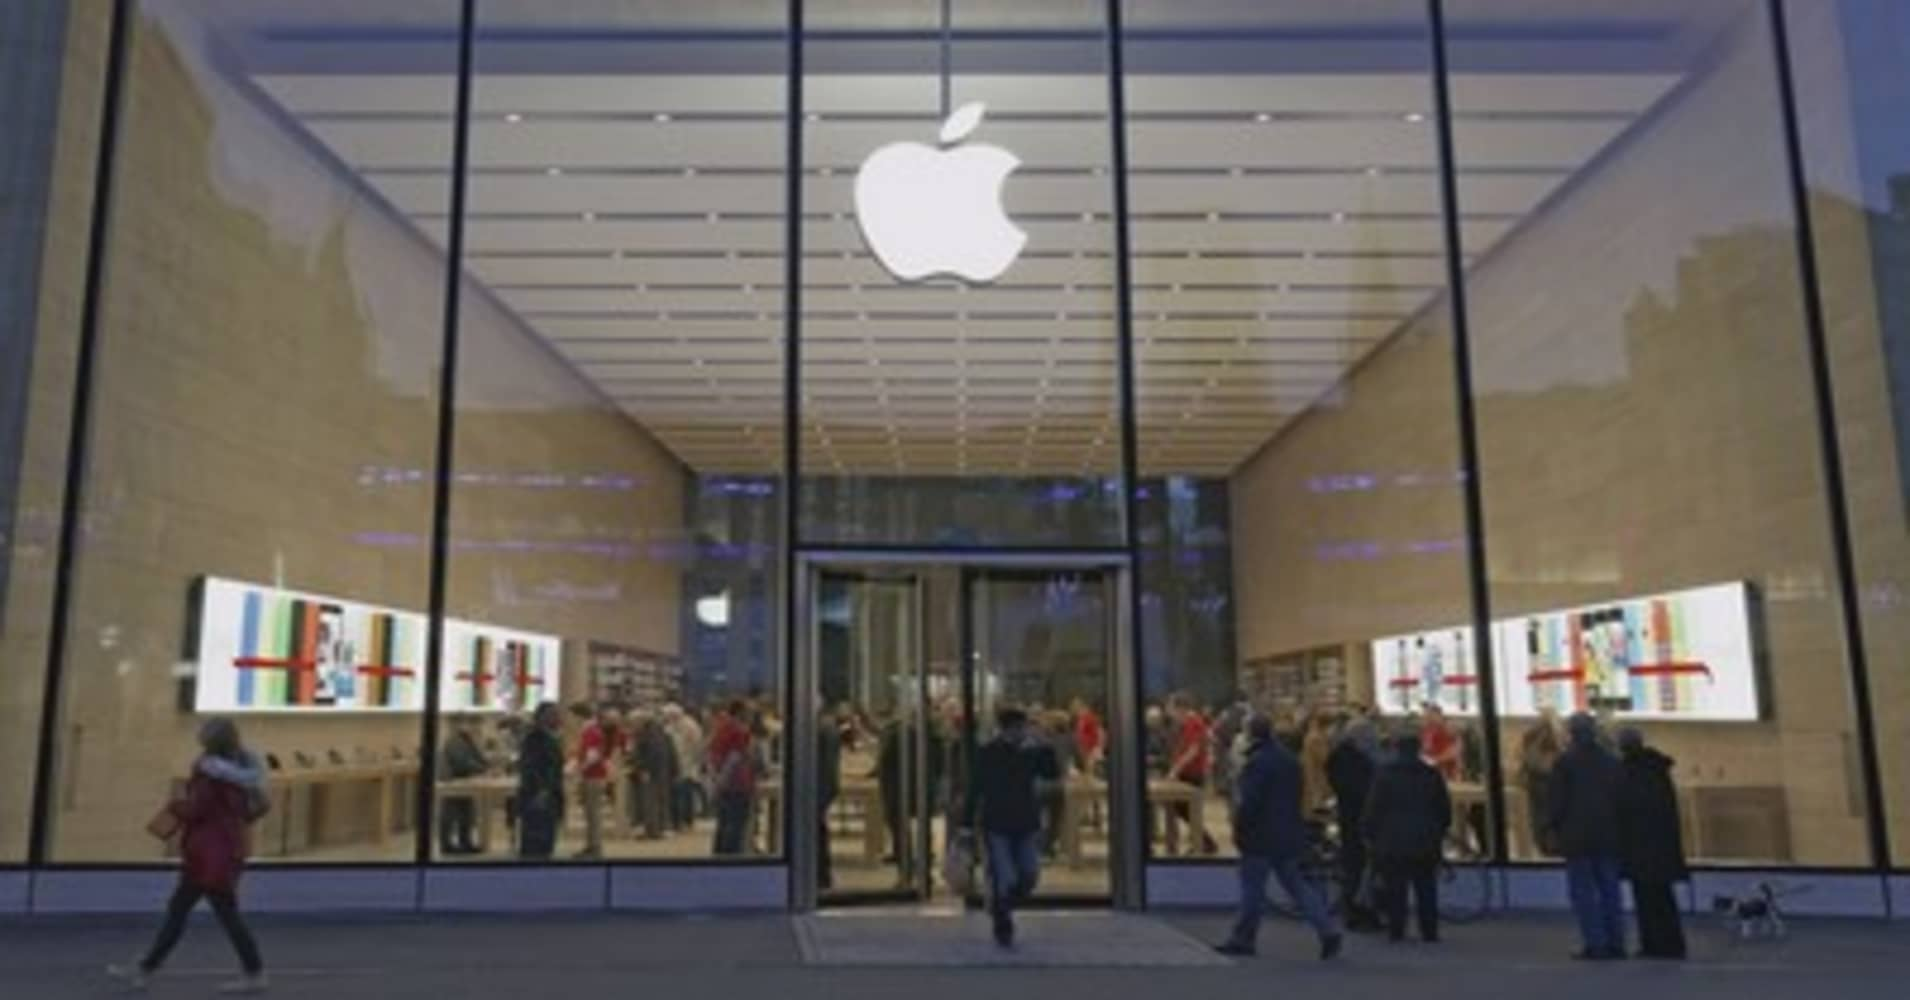 Apple has 'something to hide': Here's what every major analyst had to say about its earnings report